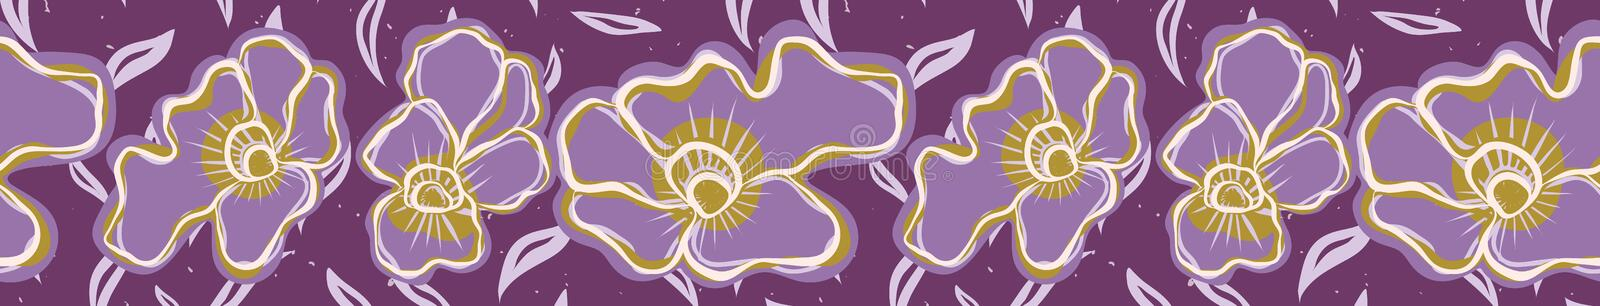 Pretty tiny flower pansy blooms border. Seamless repeating. stock illustration